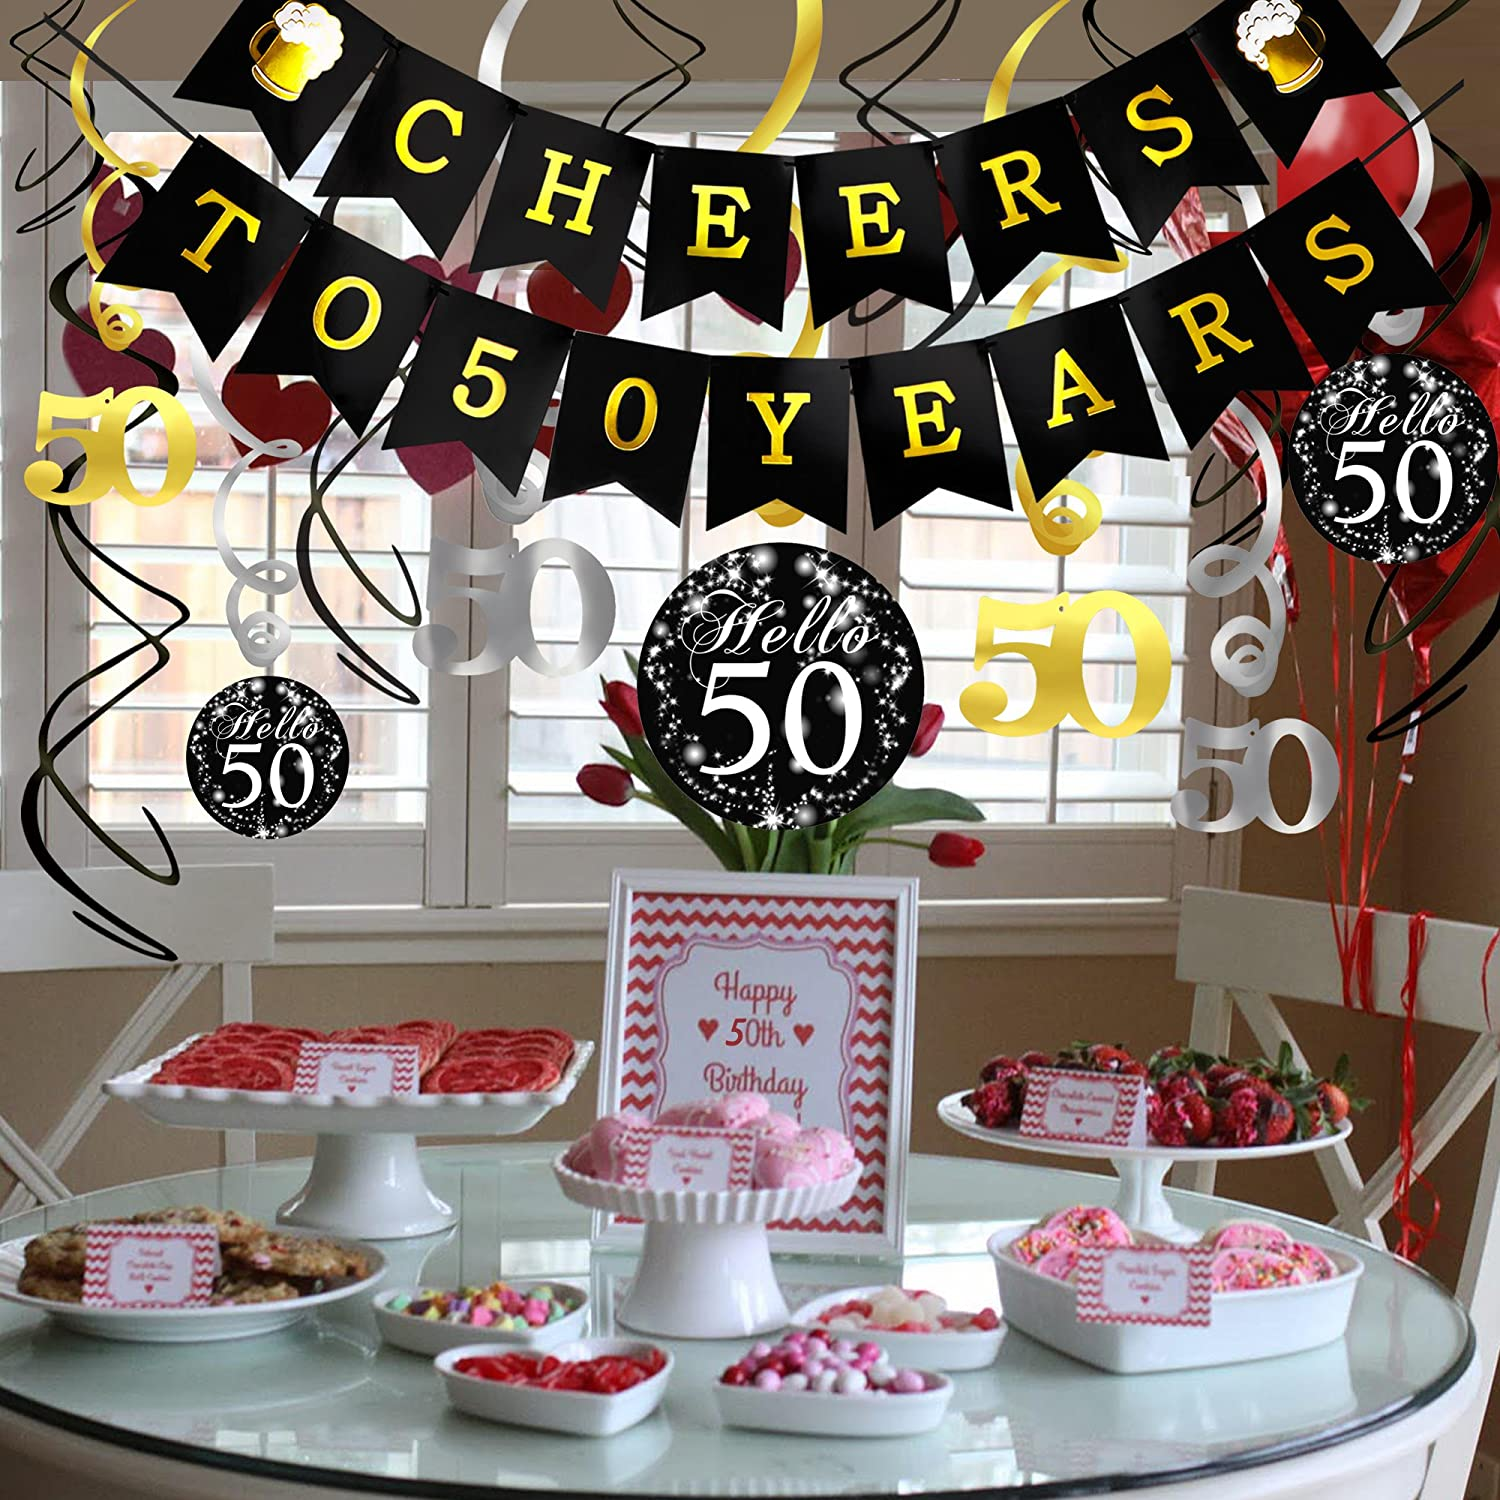 Amazon Konsait 50th Birthday Decorations Kit Cheers To 50 Years Banner Swallowtail Bunting Garland Sparkling Celebration Hanging SwirlsPerfect